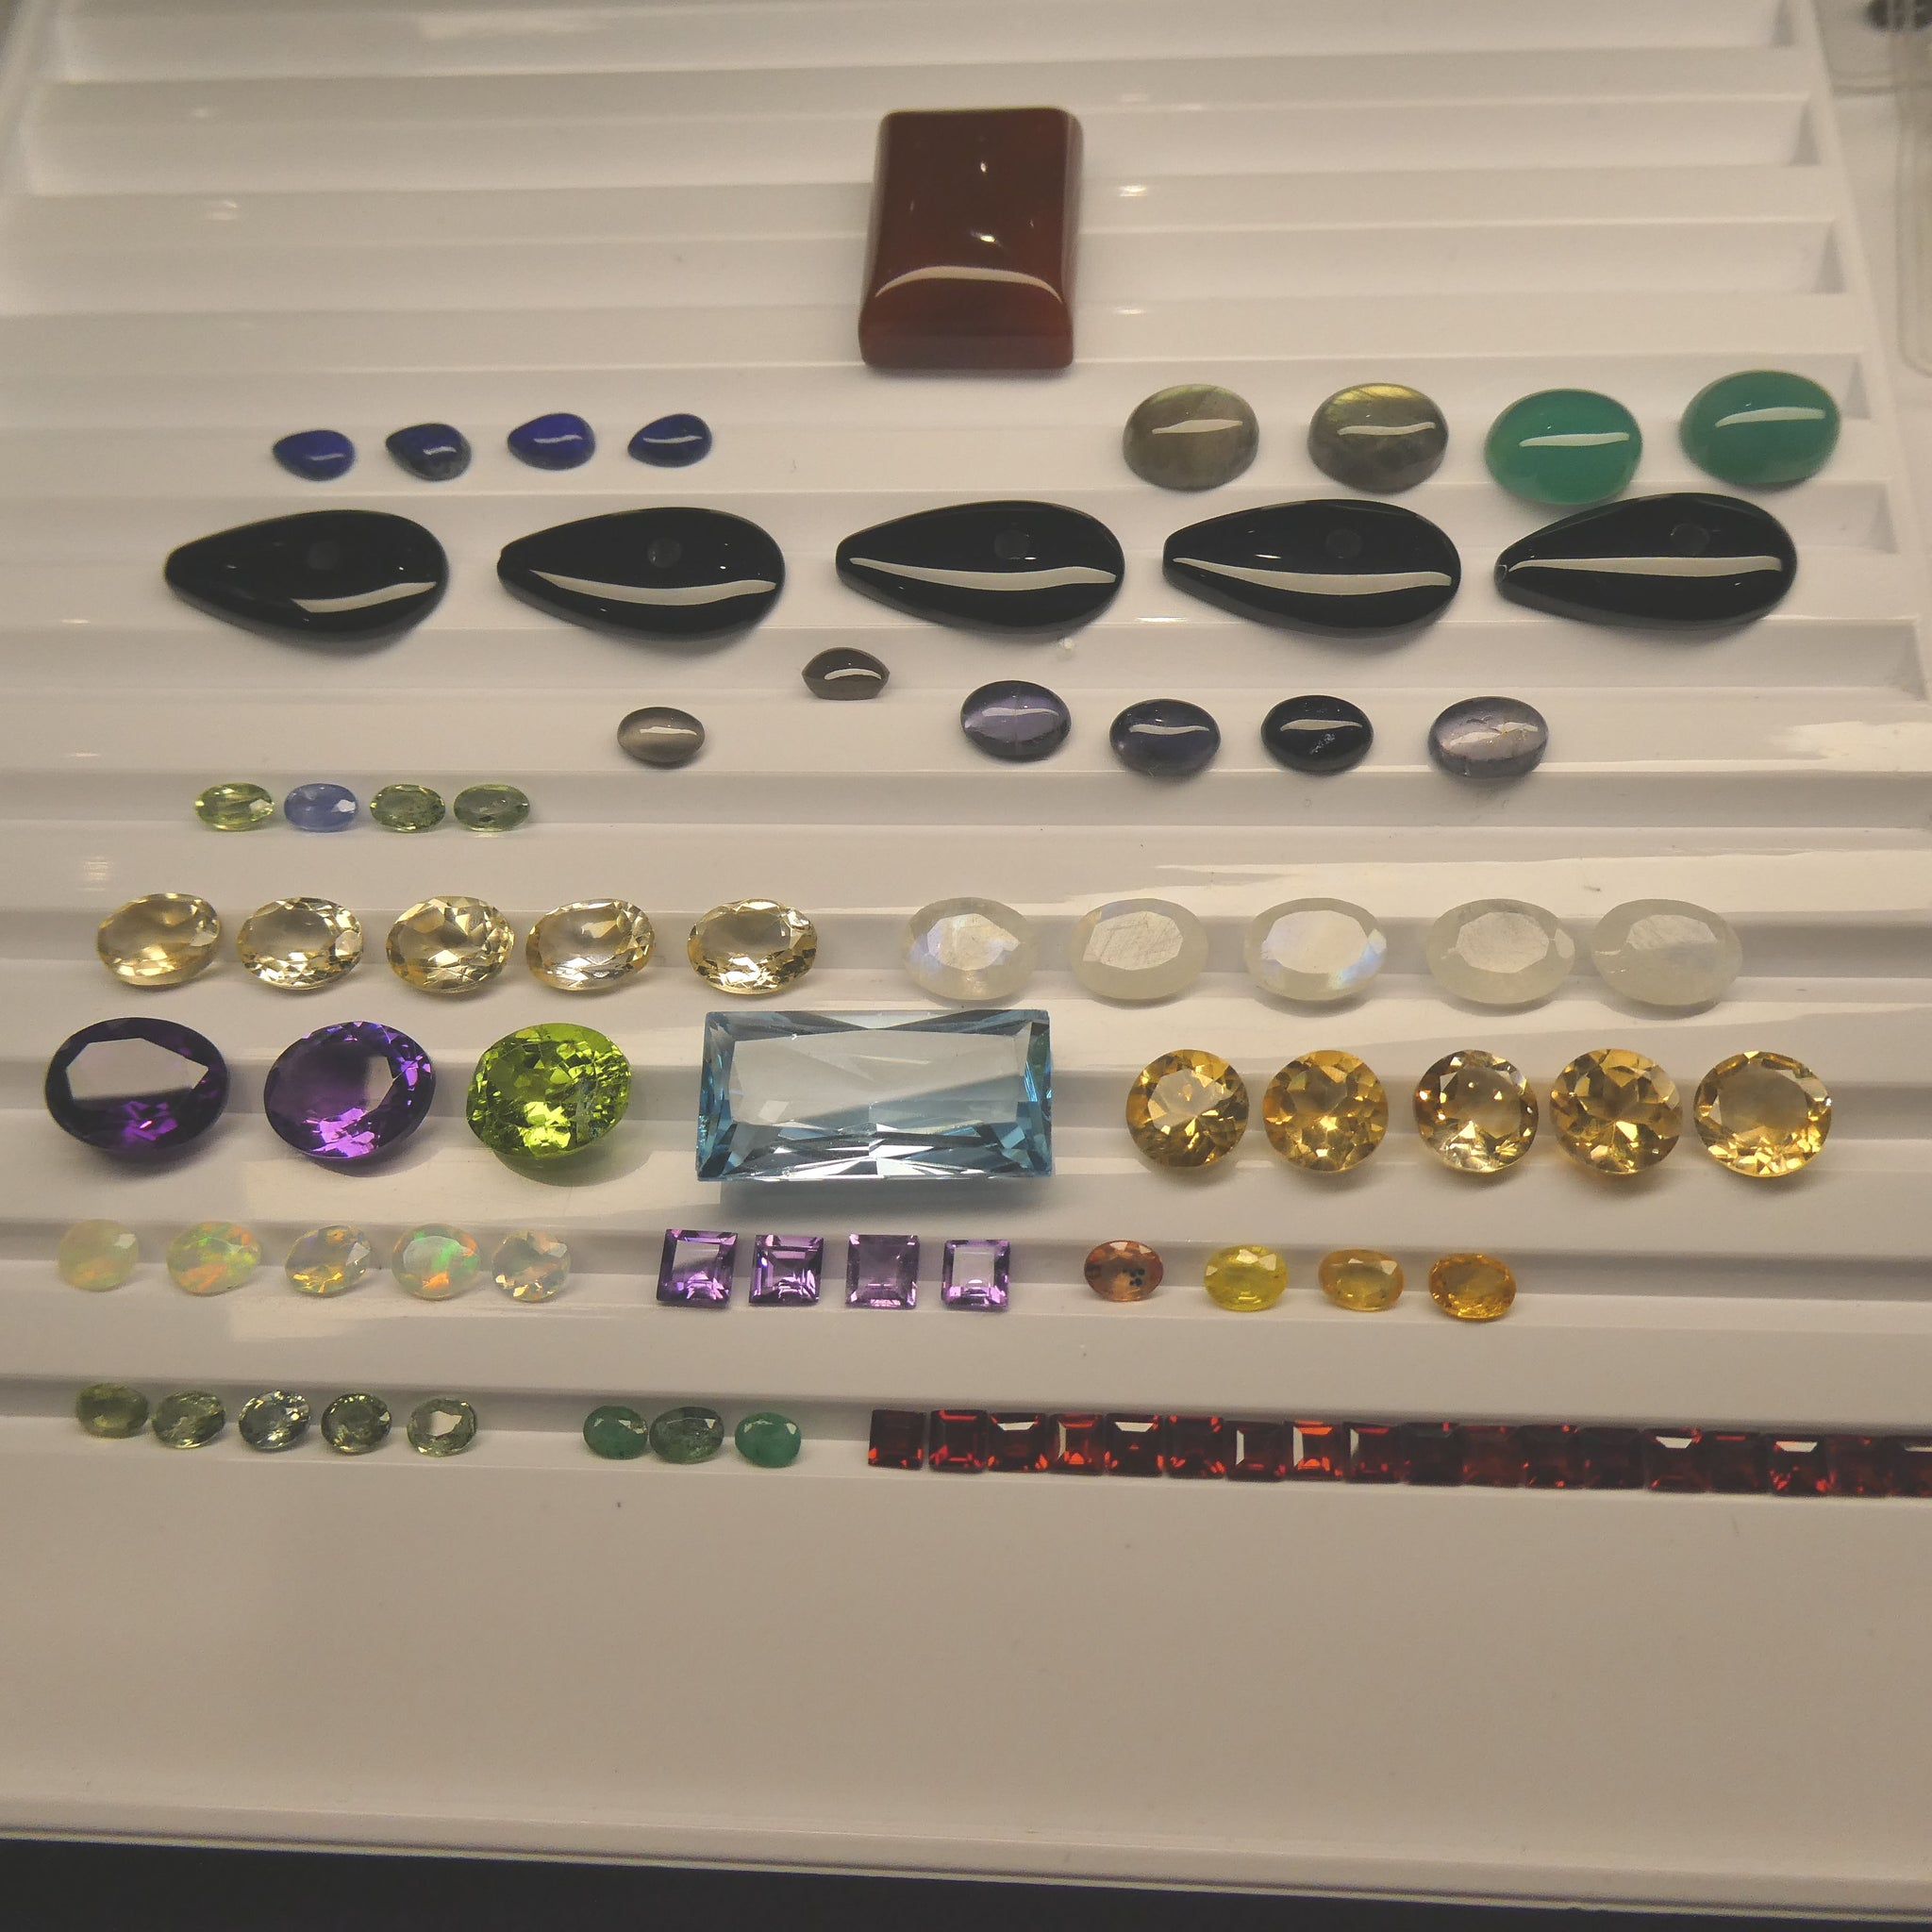 100cts+ Mixed Gem Beginner Lot: Sapphire, Emerald, Opal, Peridot, Amethyst, Citrine, Moonstone AND MORE!